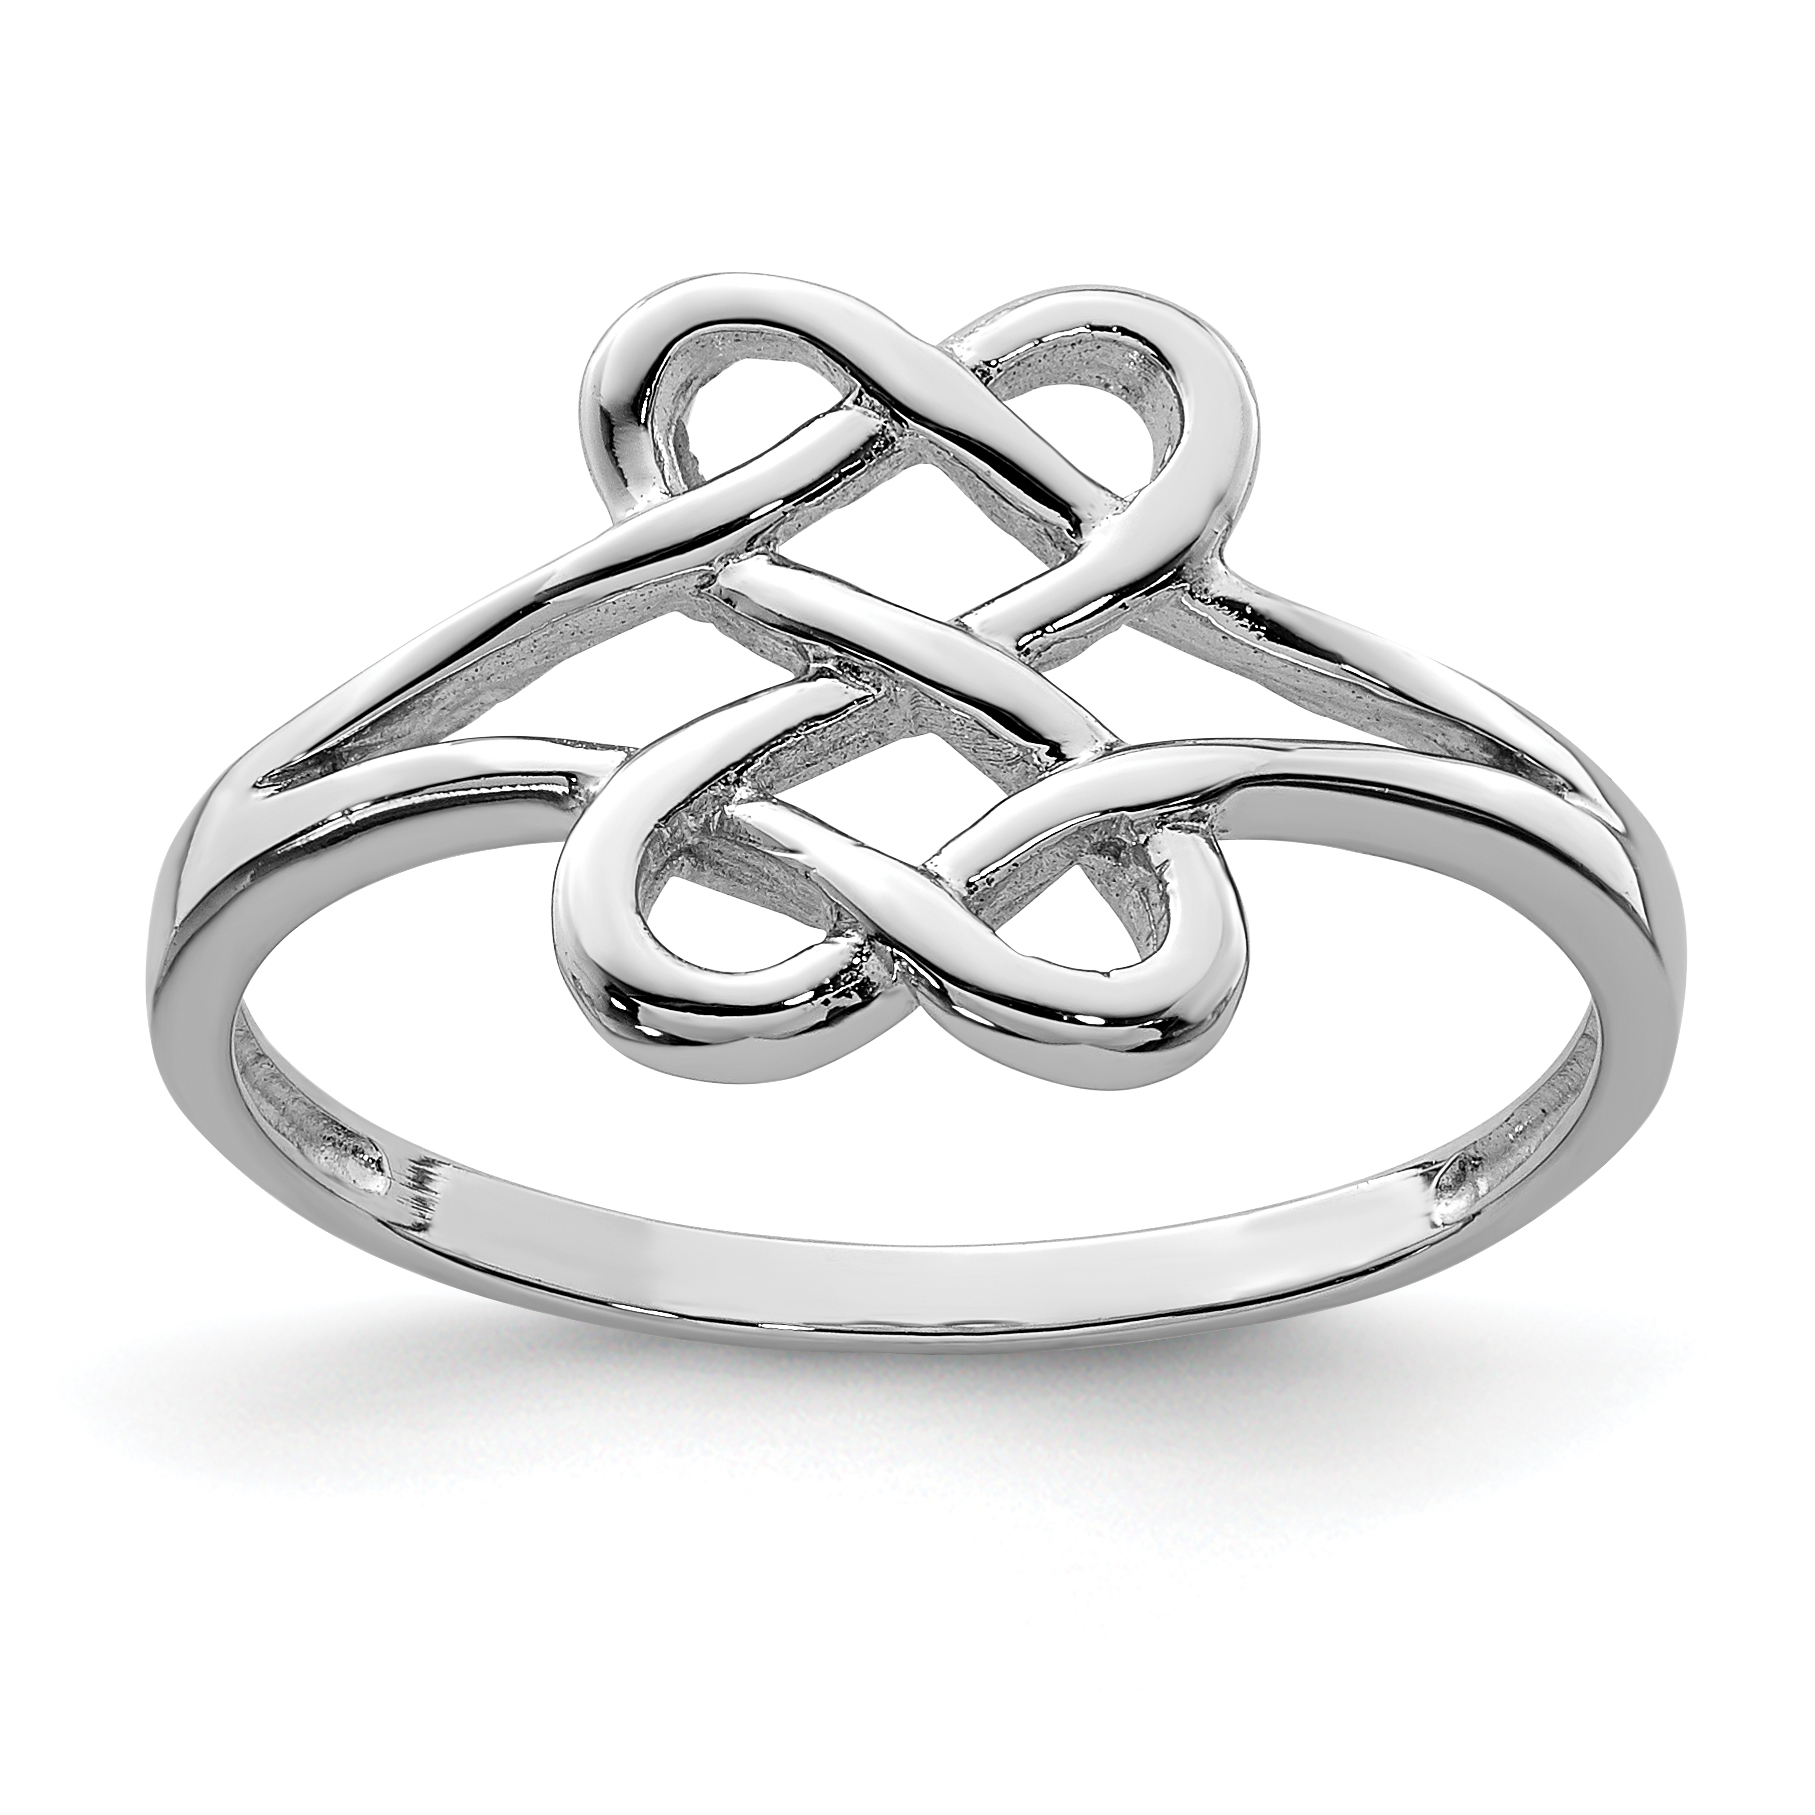 925 Sterling Silver Two Sided Heart Band Ring Size 7.00 S/love Fine Jewelry Gifts For Women For Her - image 2 de 2